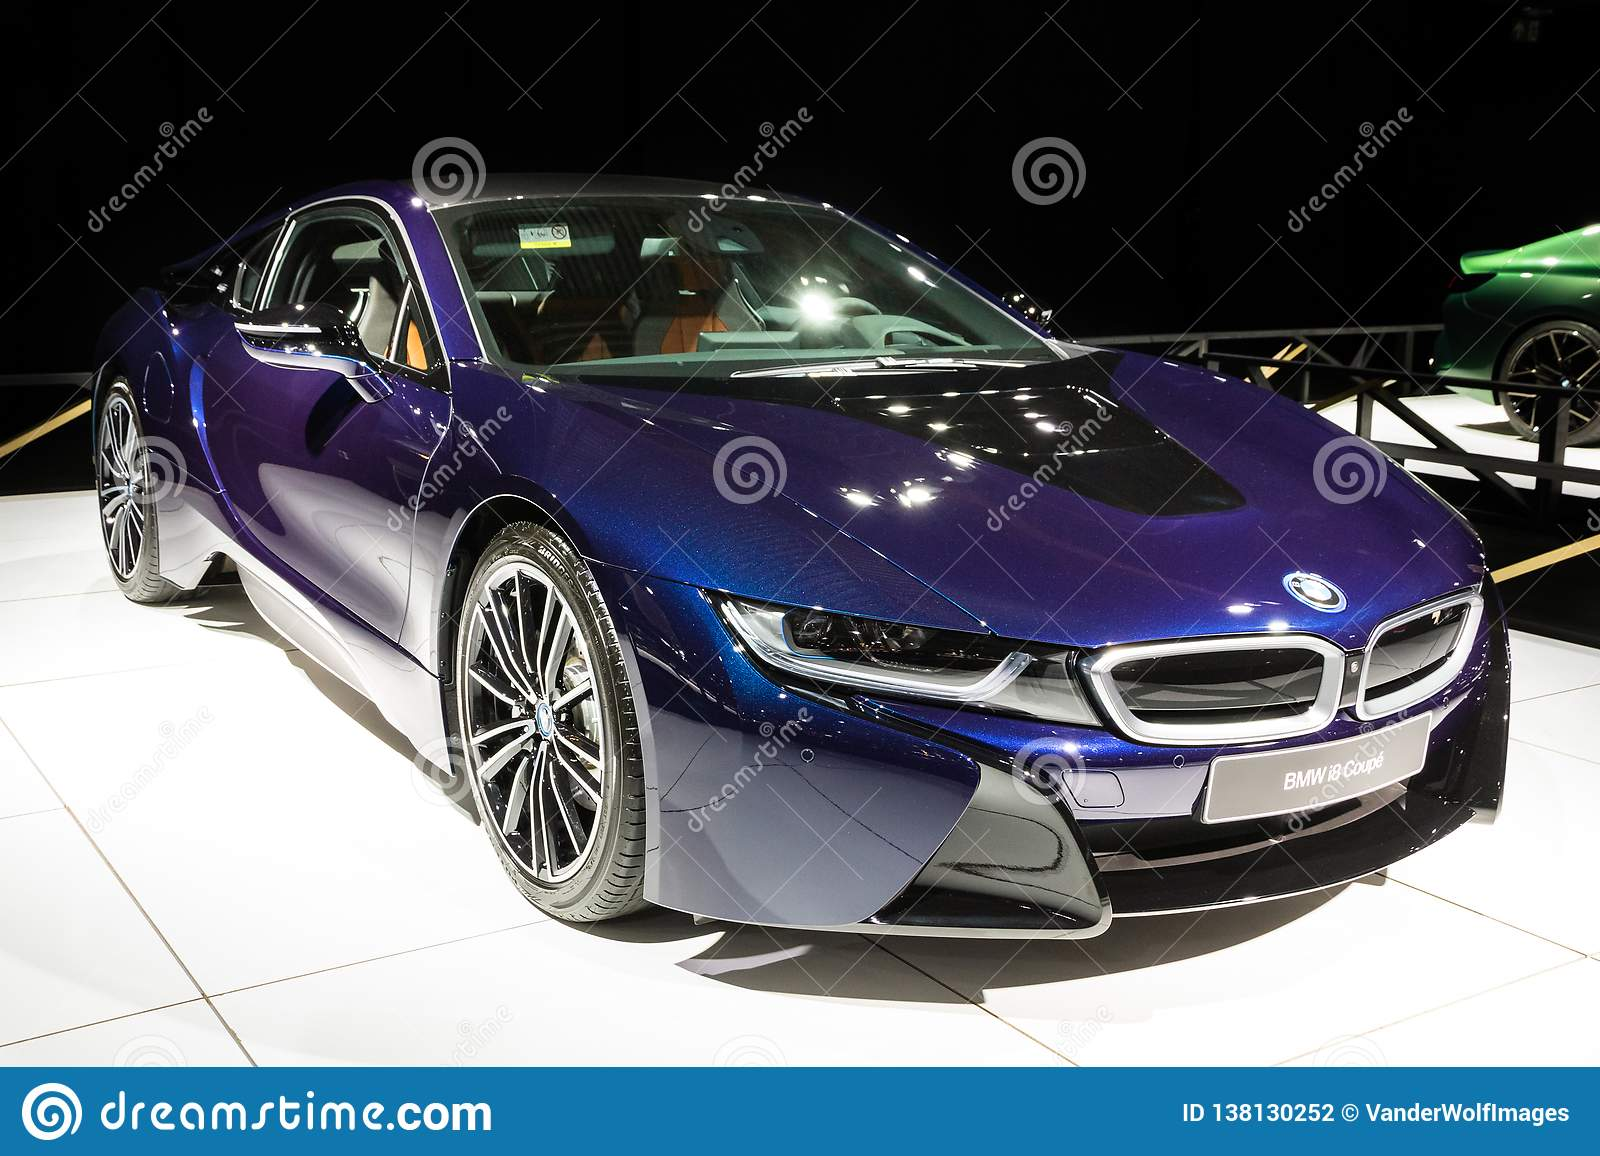 Bmw I8 Coupe Electric Sports Car Editorial Photography Image Of Expo Auto 138130252